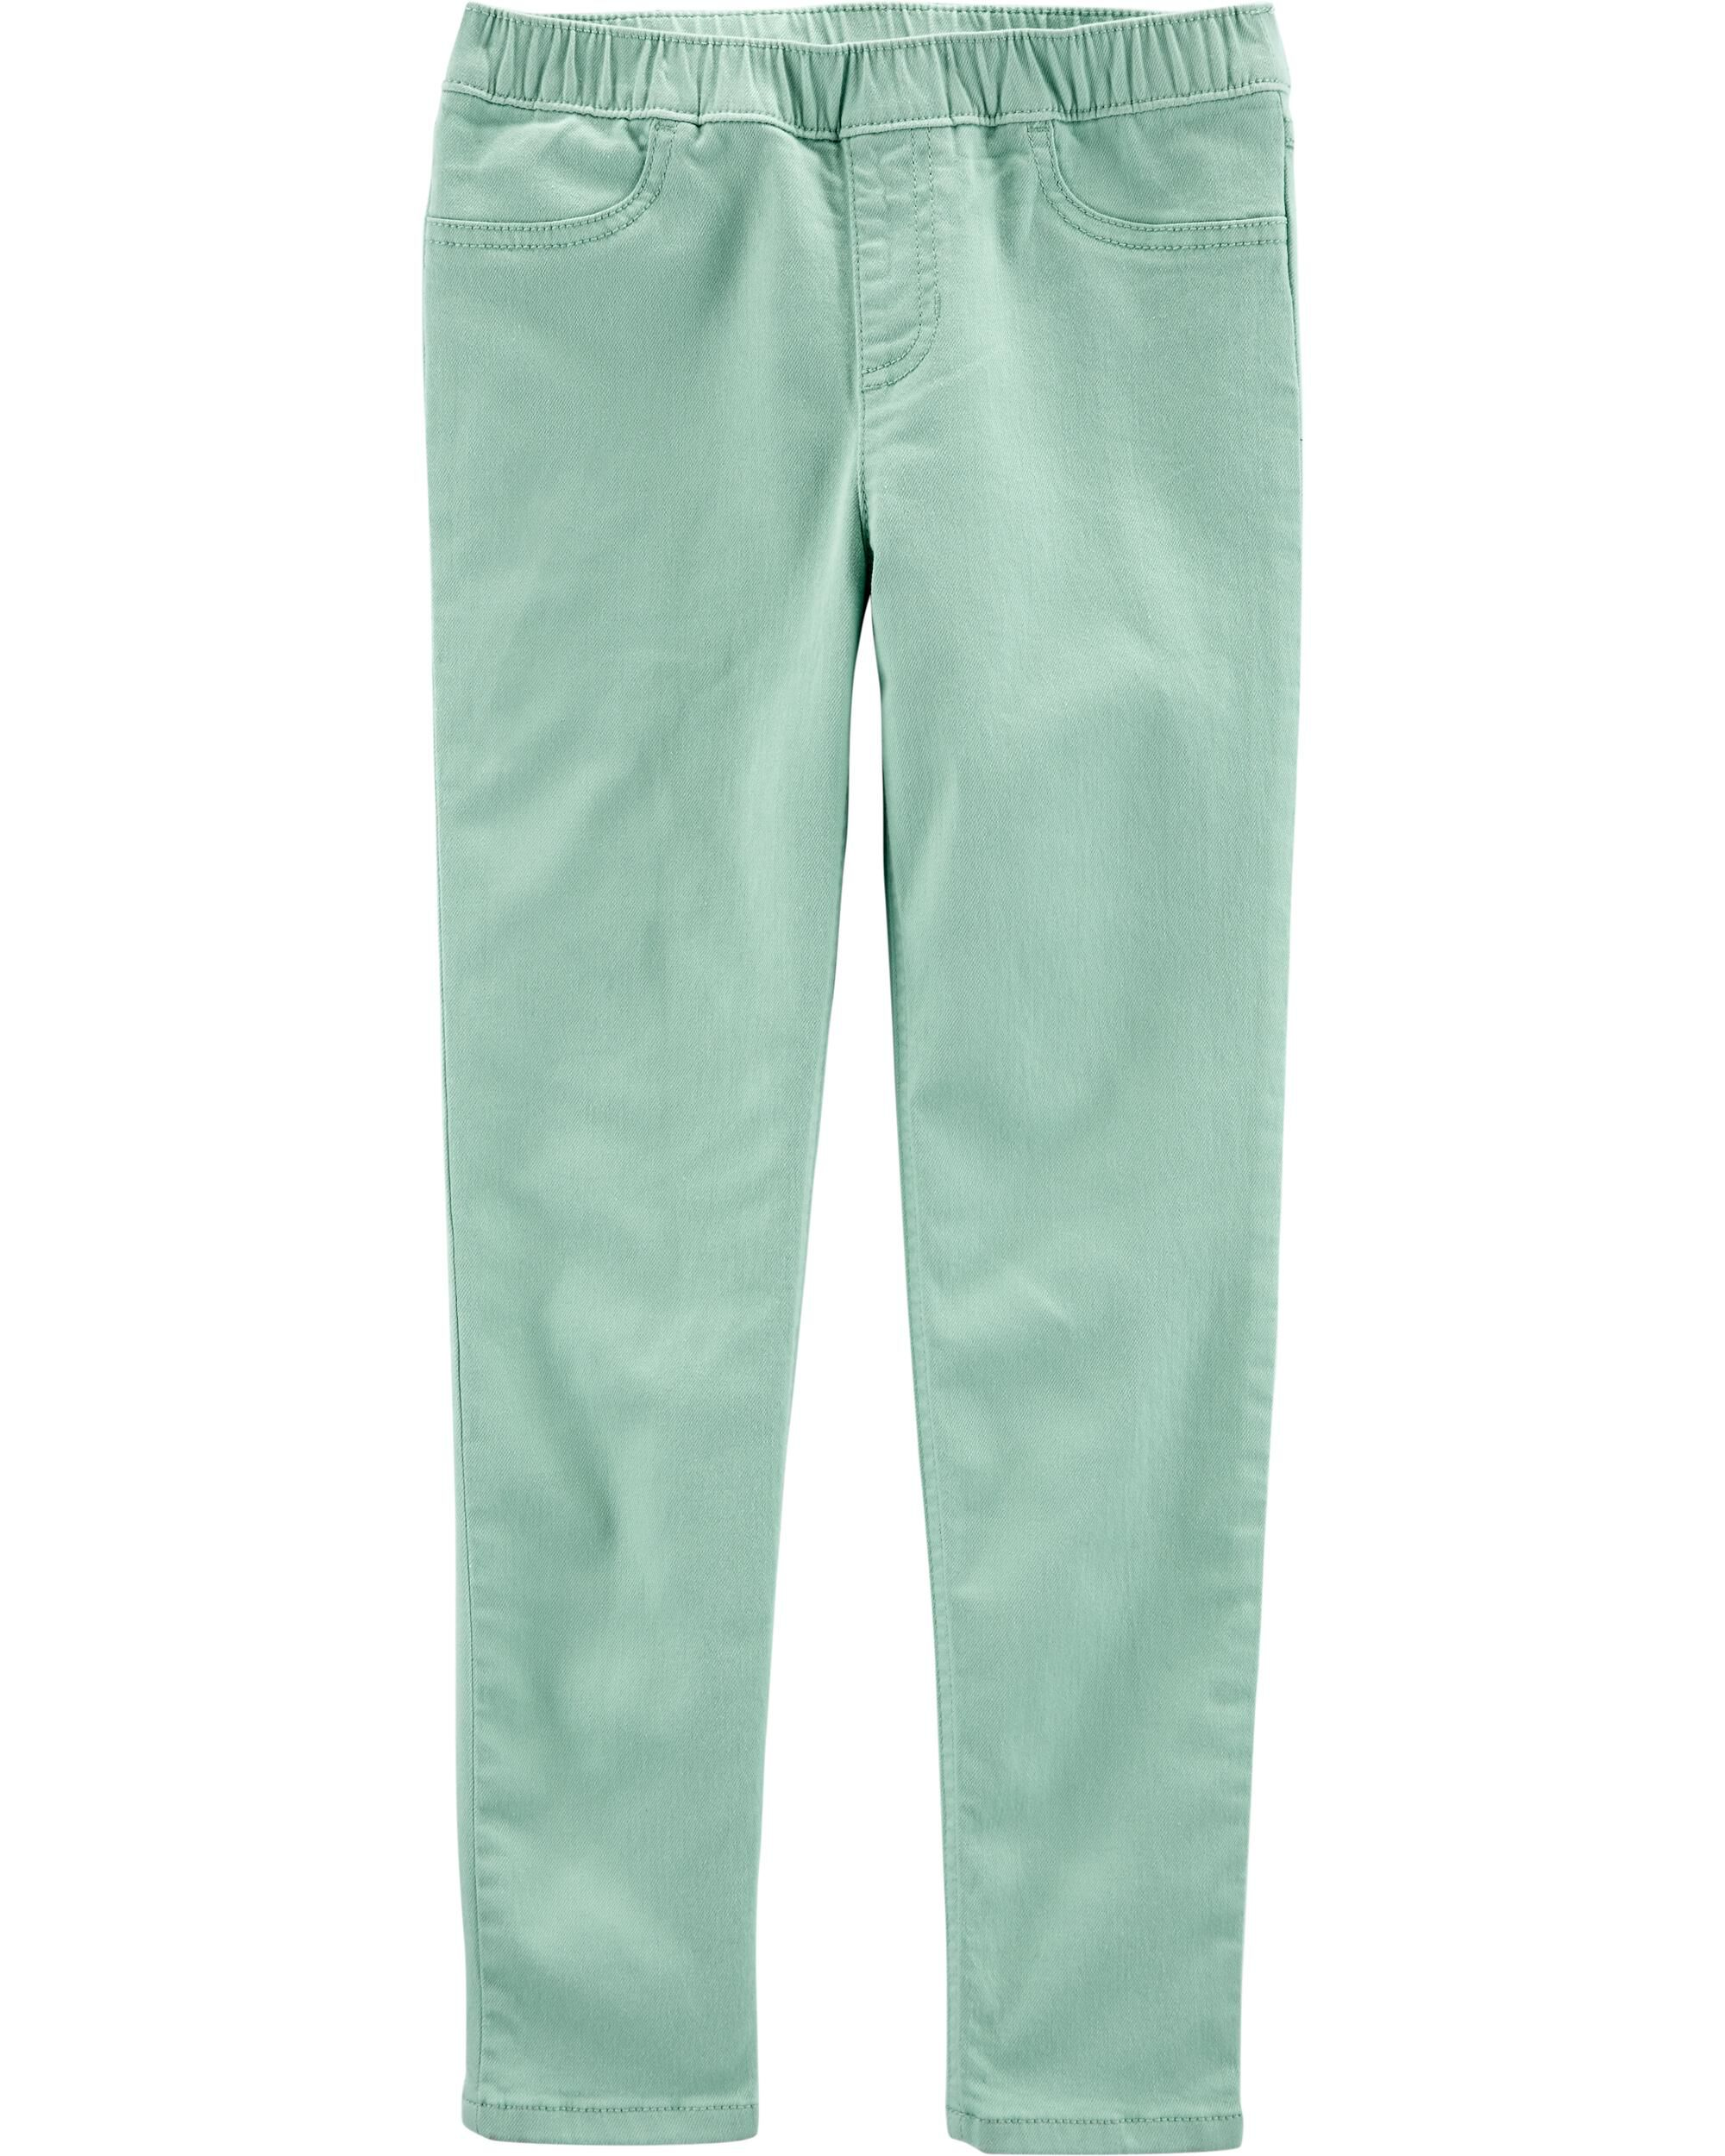 *CLEARANCE*Pull-On Jeggings